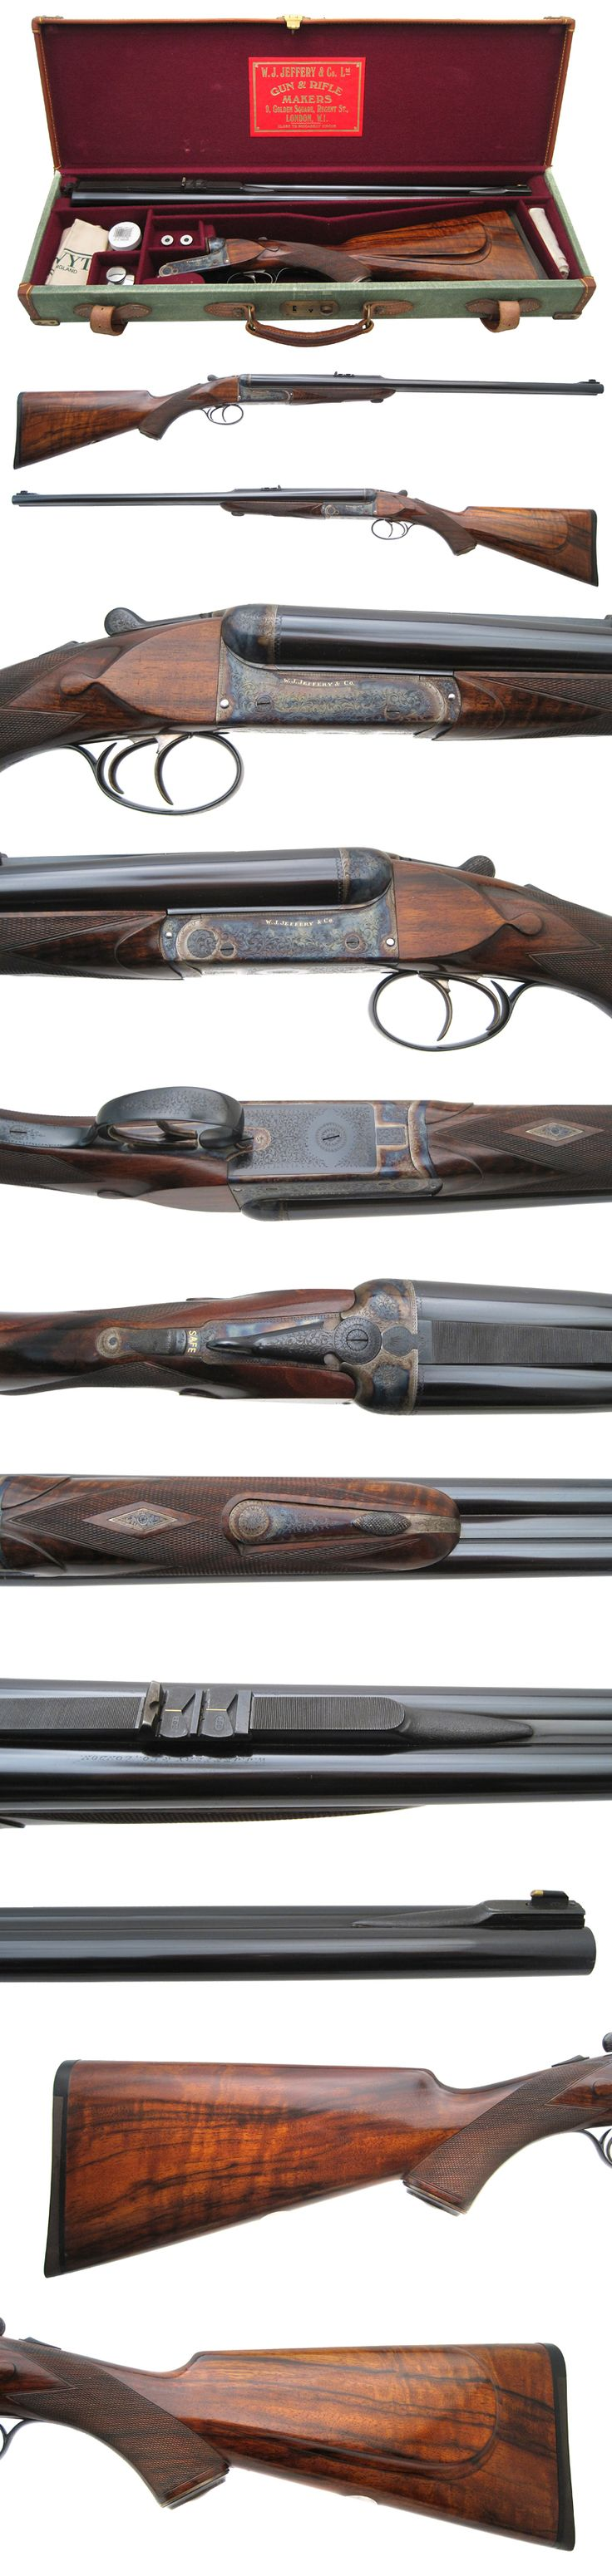 Teddy roosevelt guns to be displayed at nra national - W J Jeffery Double Rifle 500 Ne Caliber Classic Double Rifle In